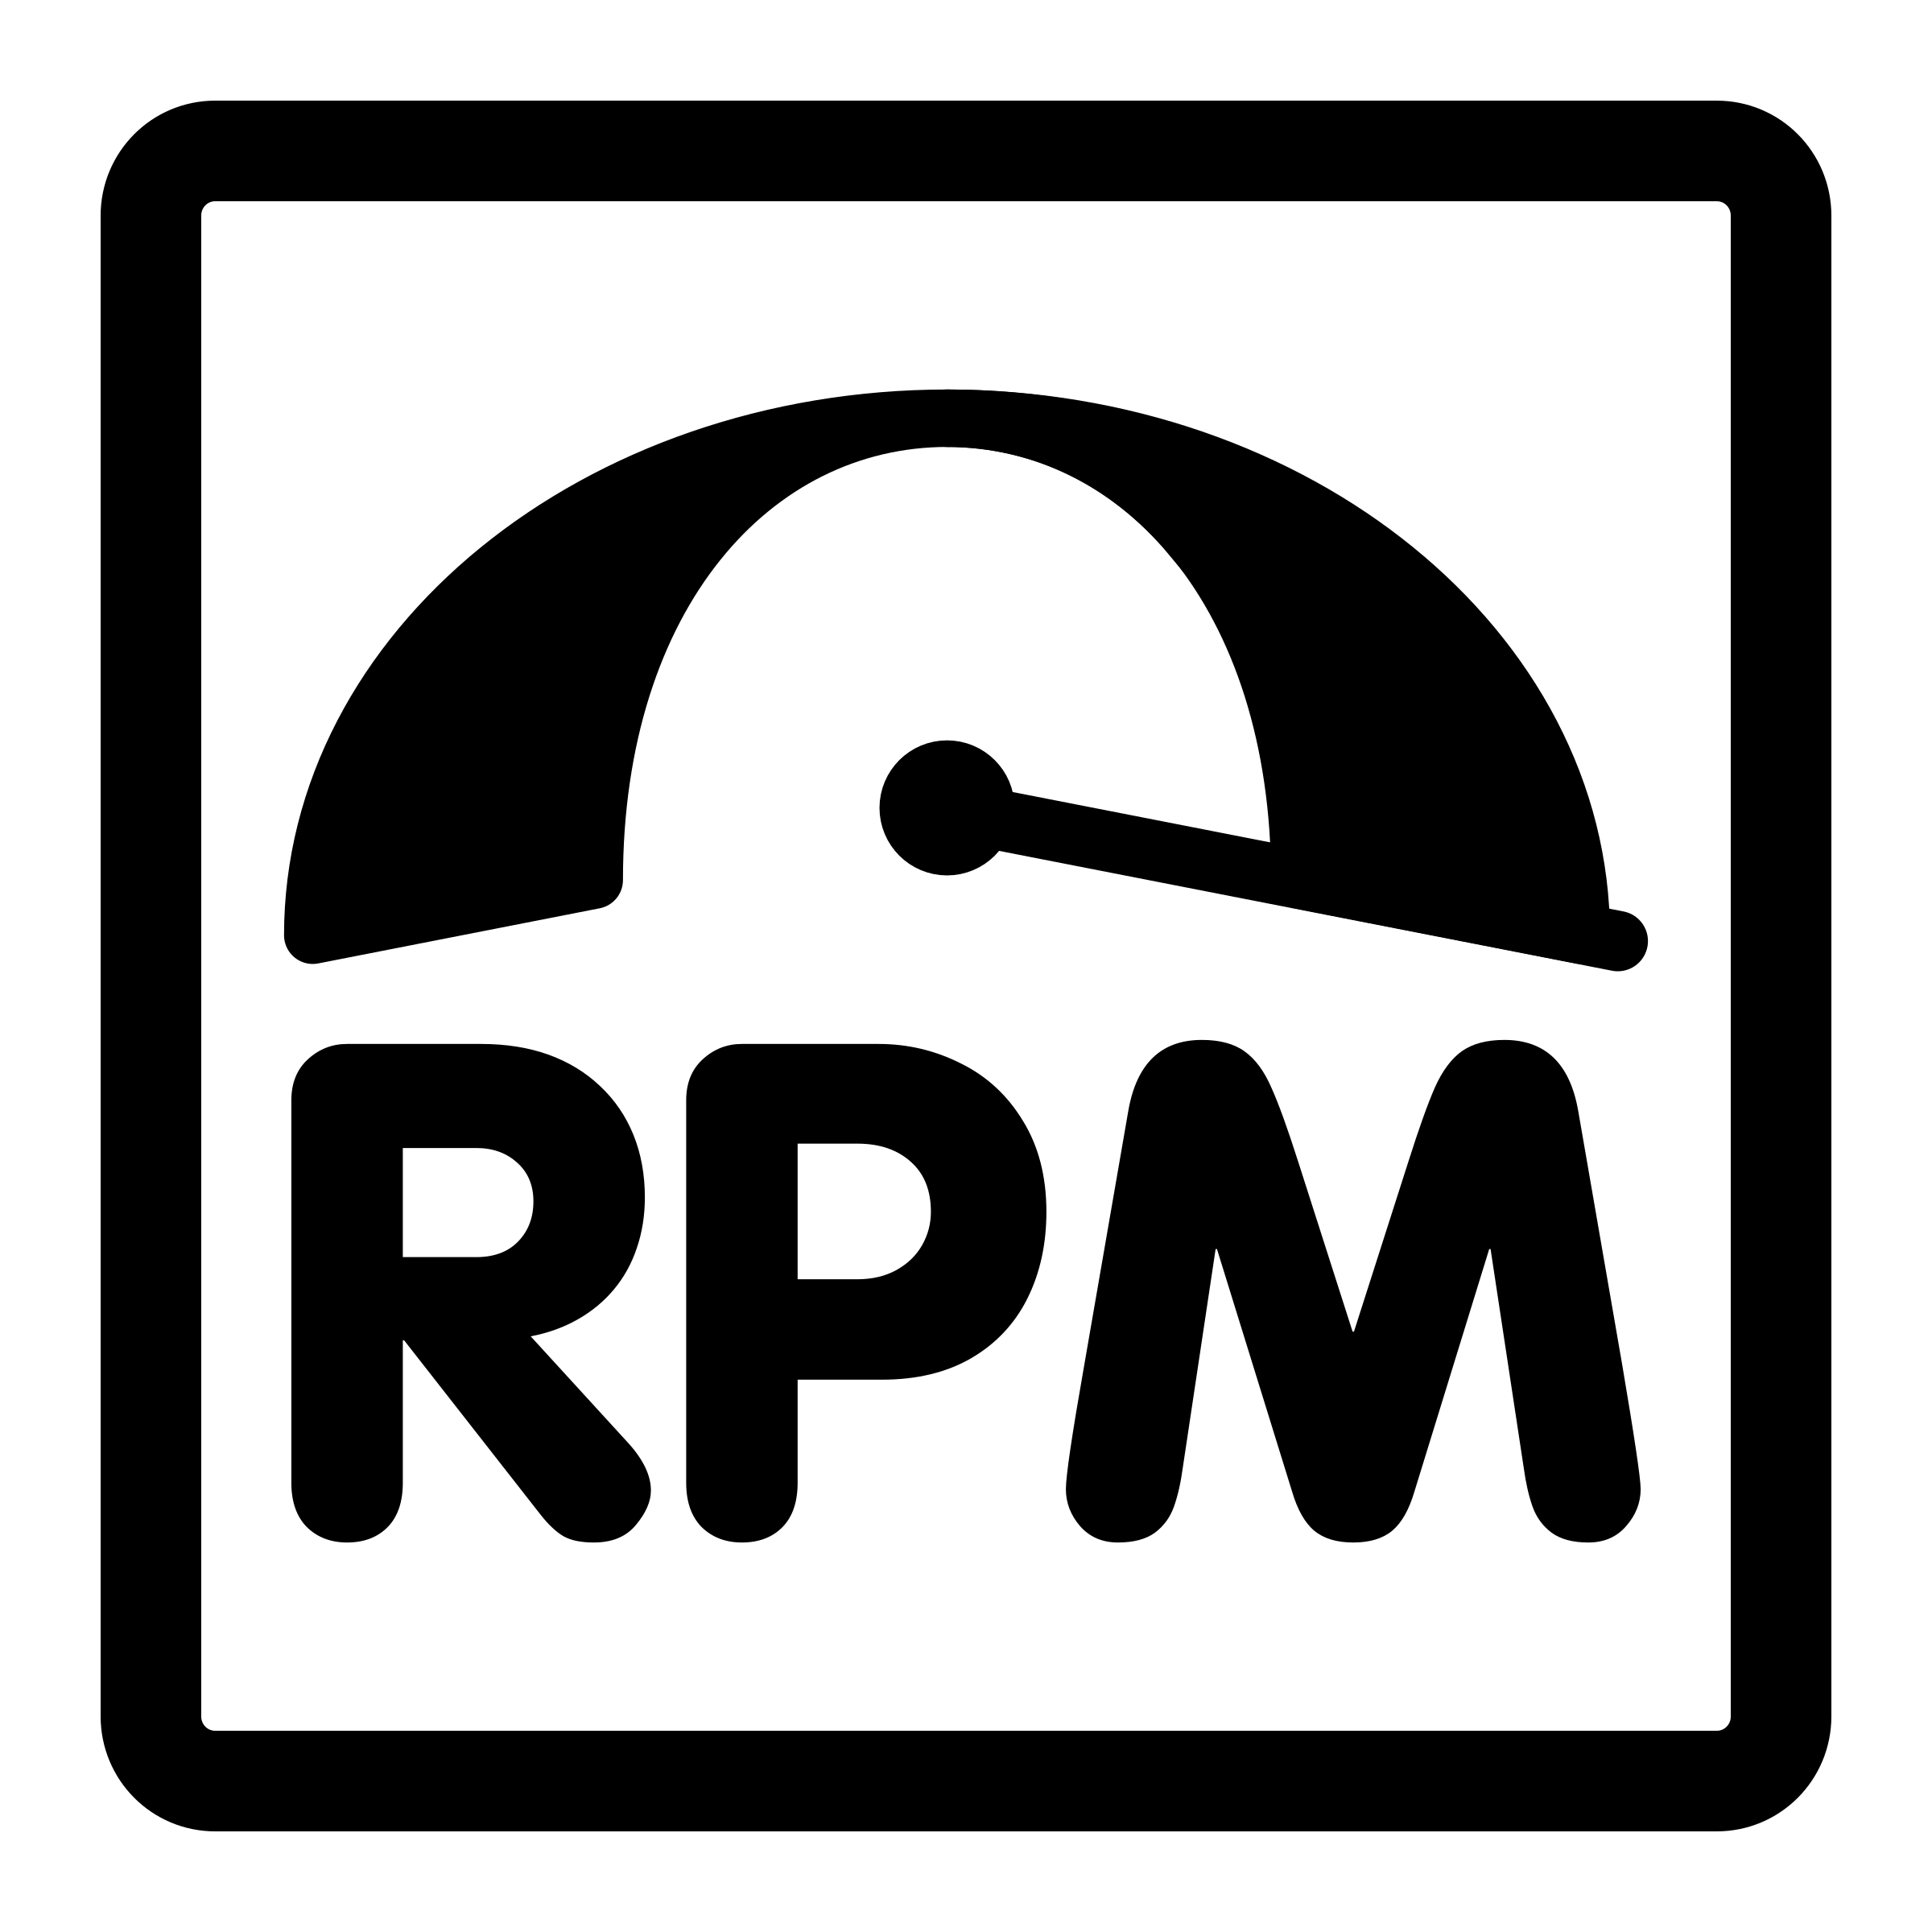 mono rpm by dannya